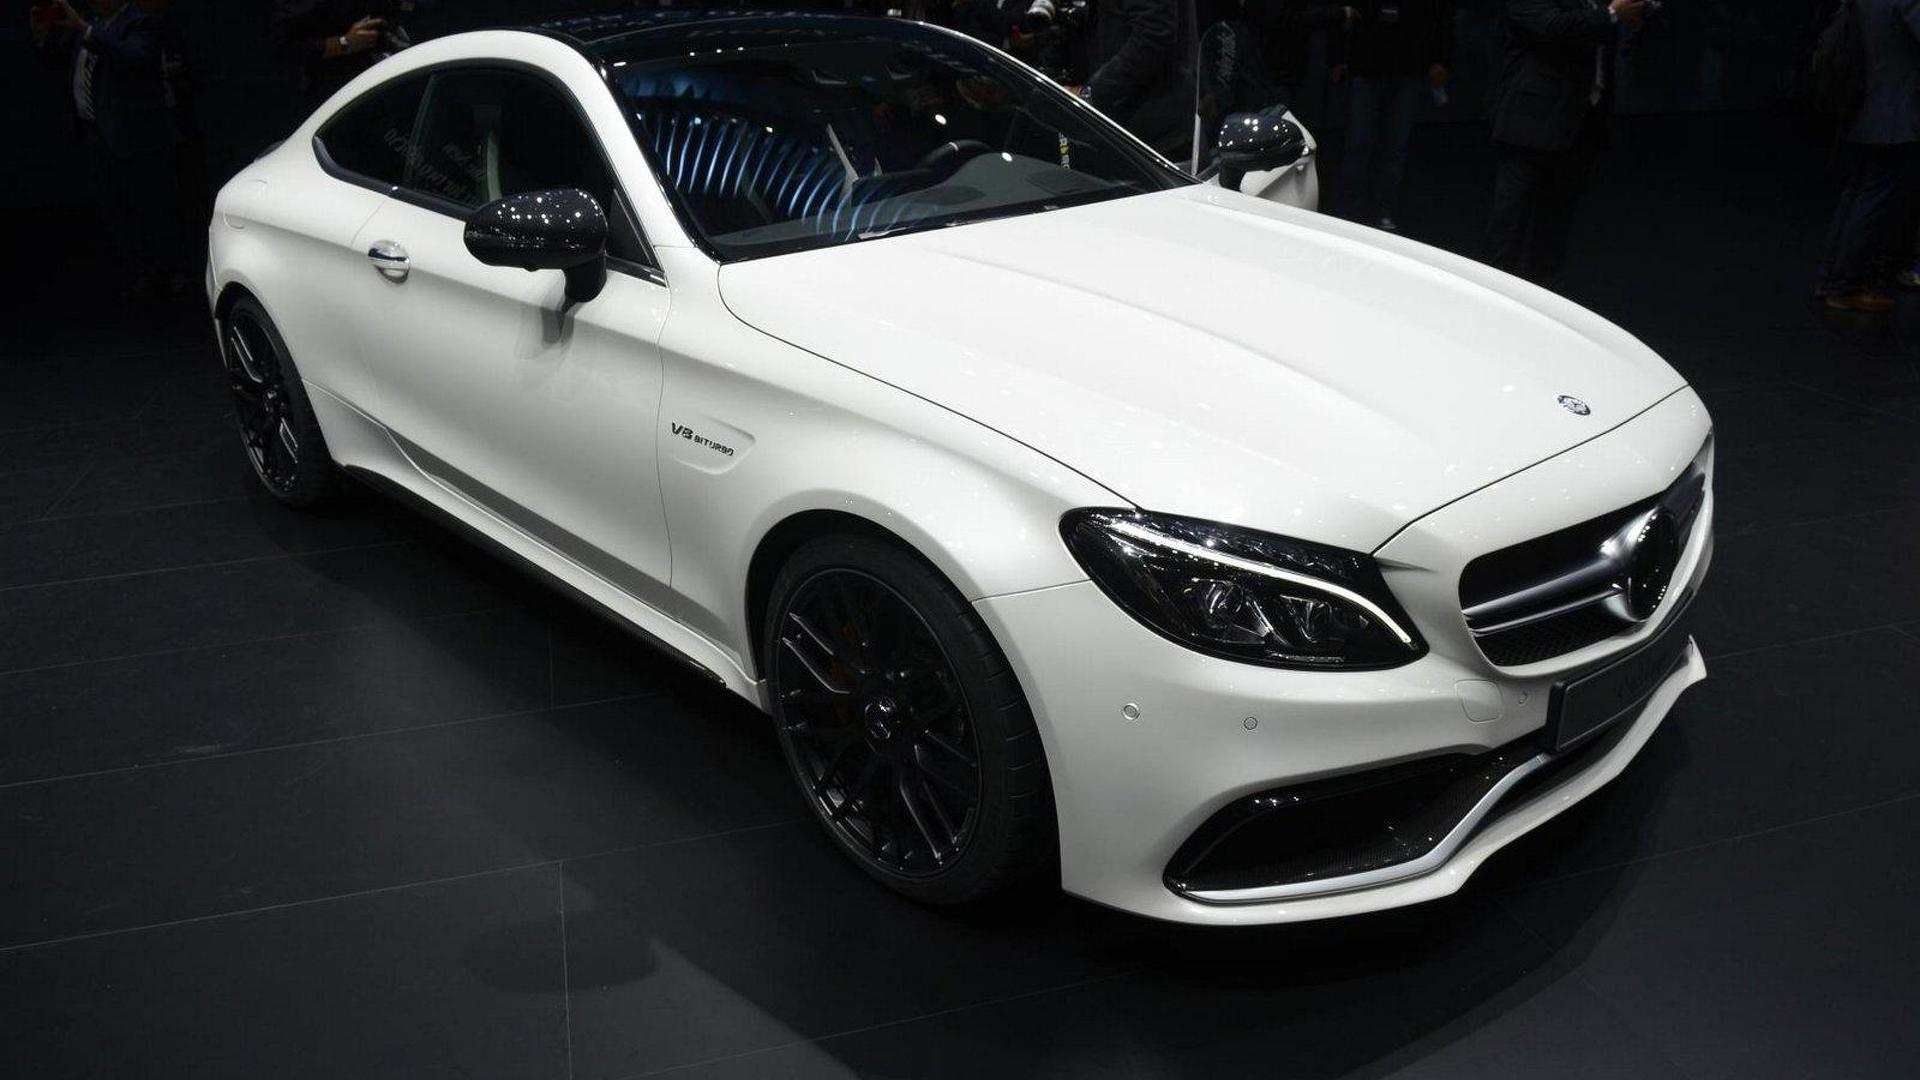 Mercedes C Class Coupe Lineup Unveiled With Up To 510 Ps